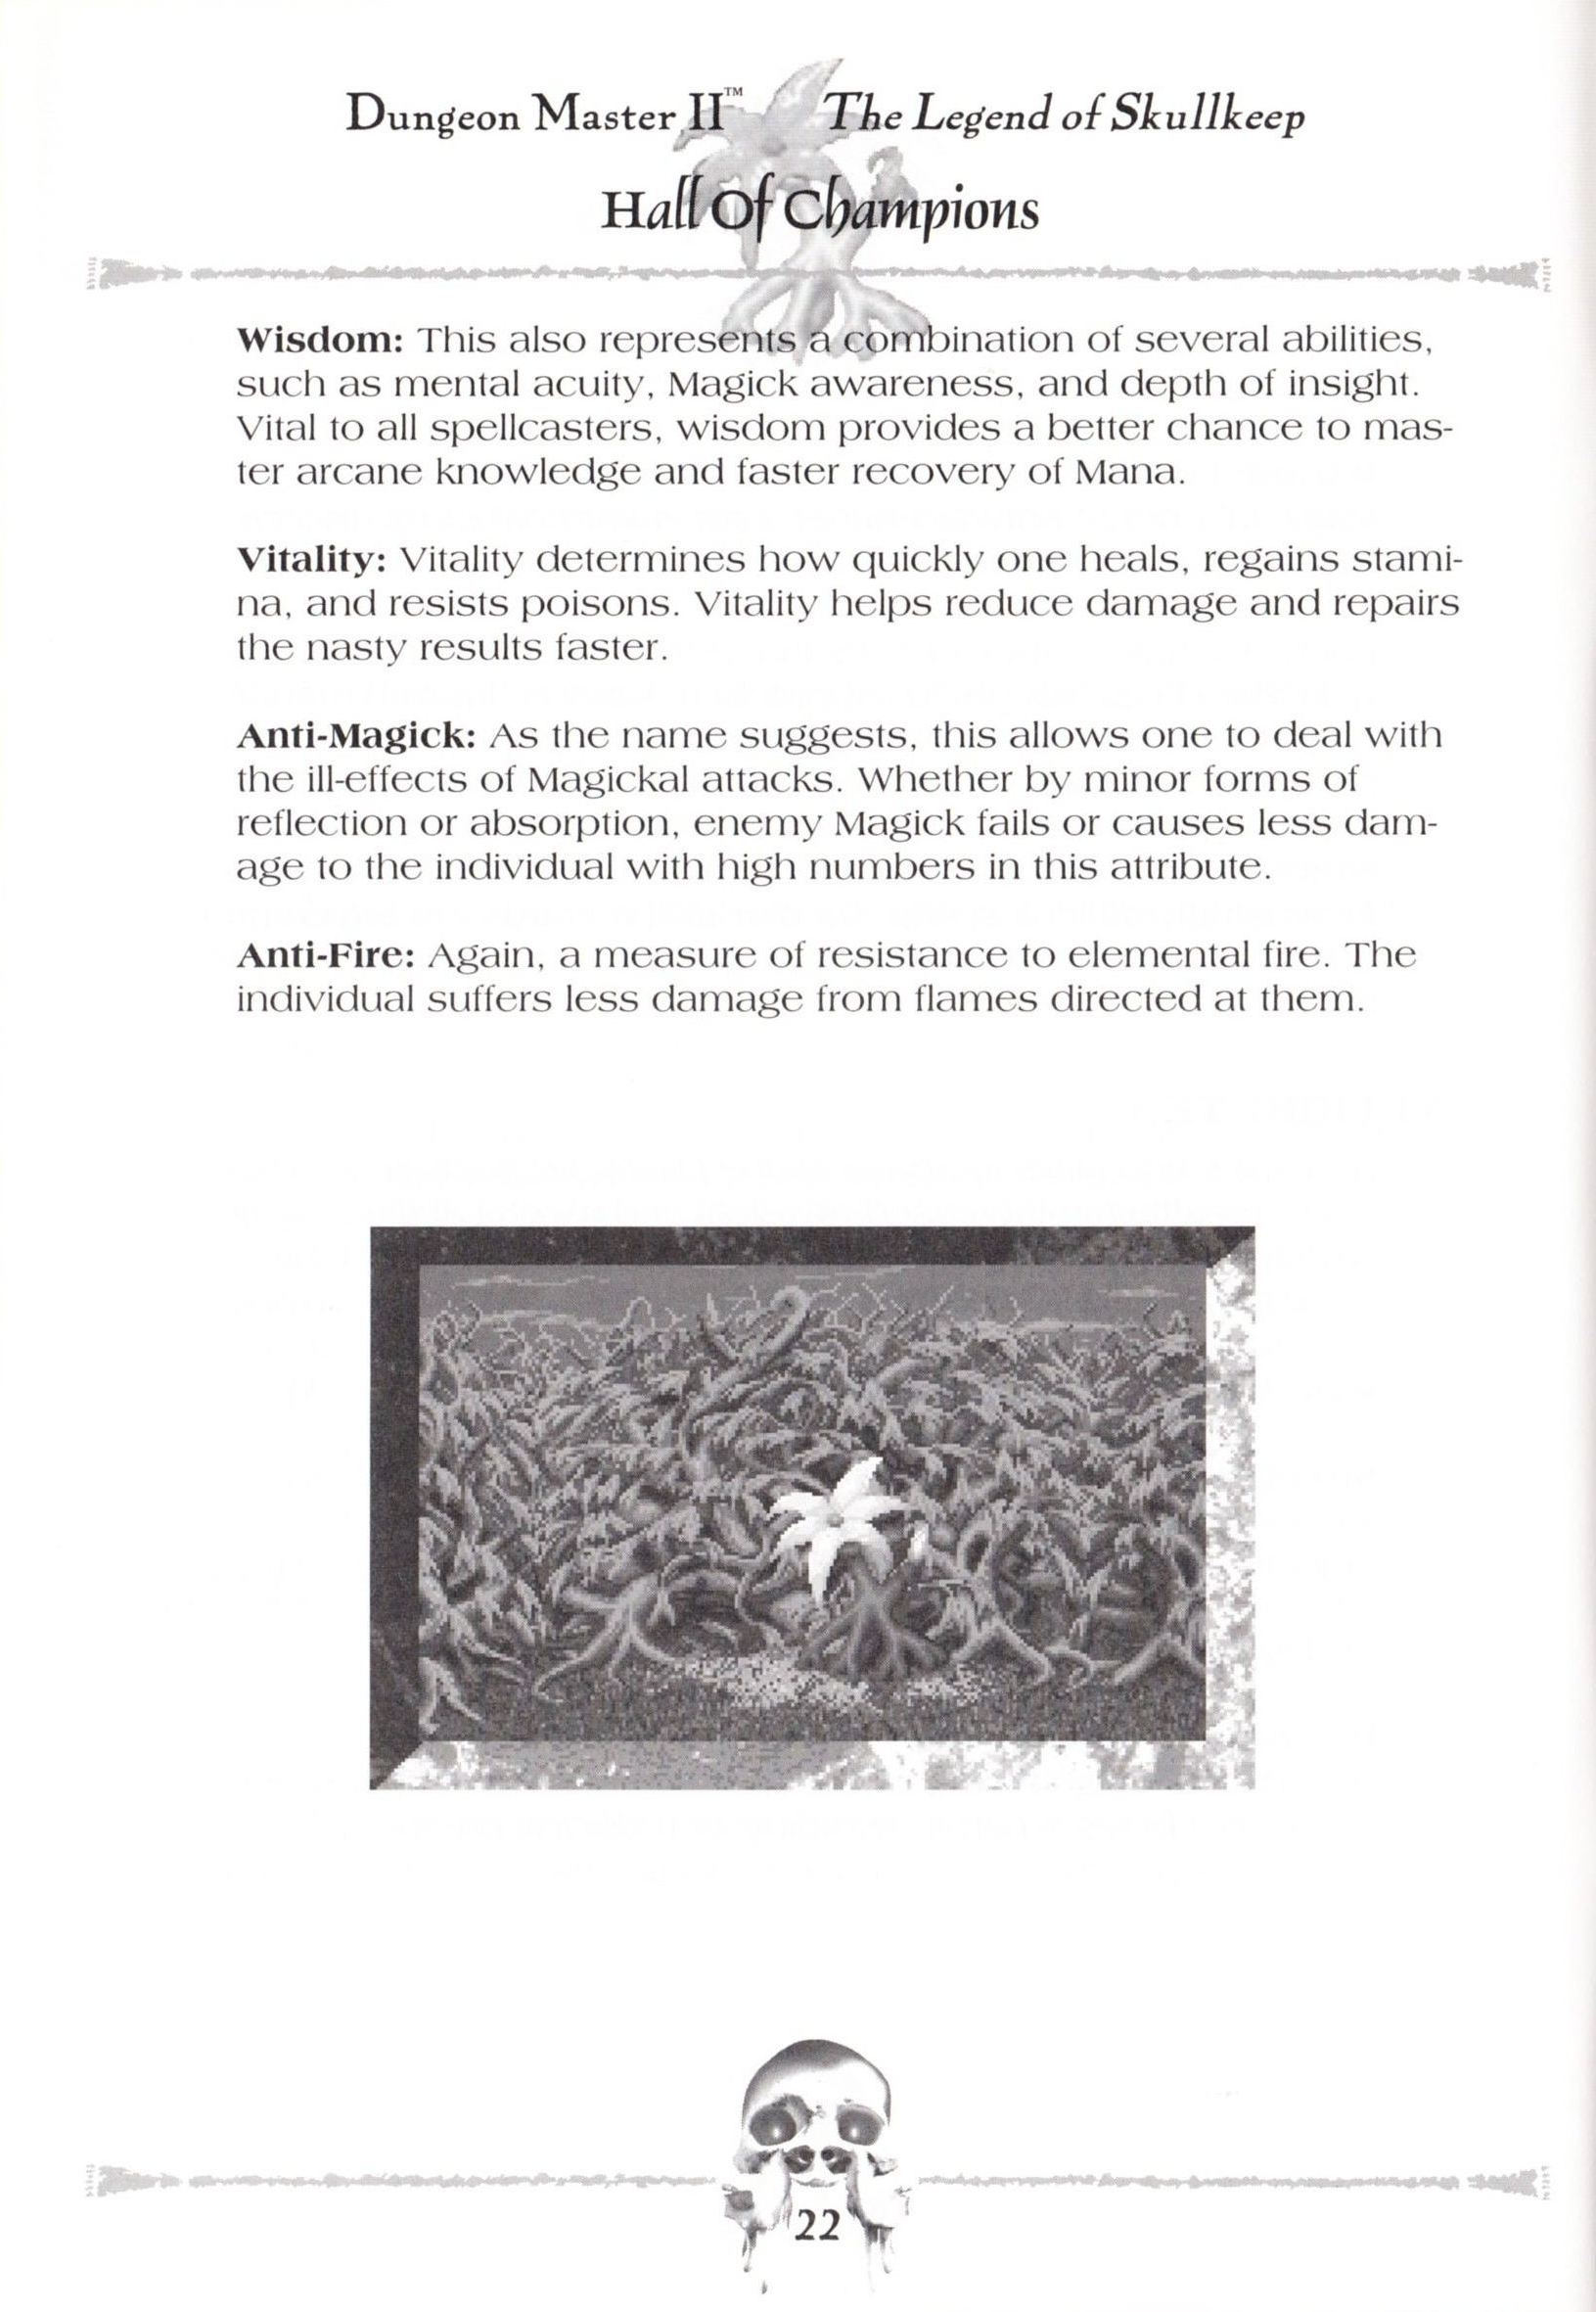 Game - Dungeon Master II - US - Macintosh - Manual - Page 024 - Scan